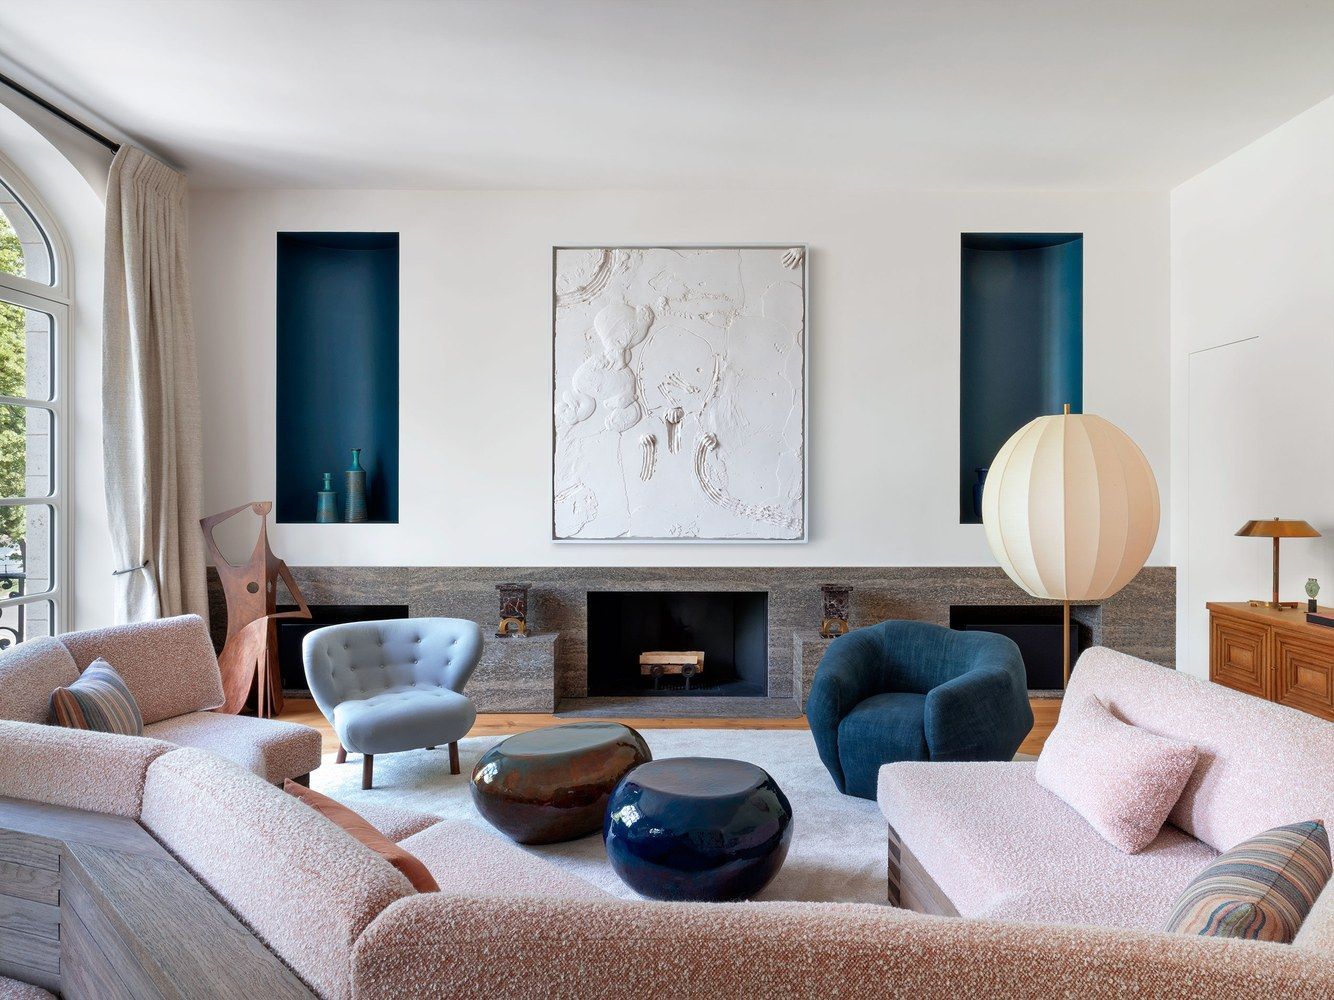 Pin by greg heasley on Living Rooms | Pinterest | Interiors ...